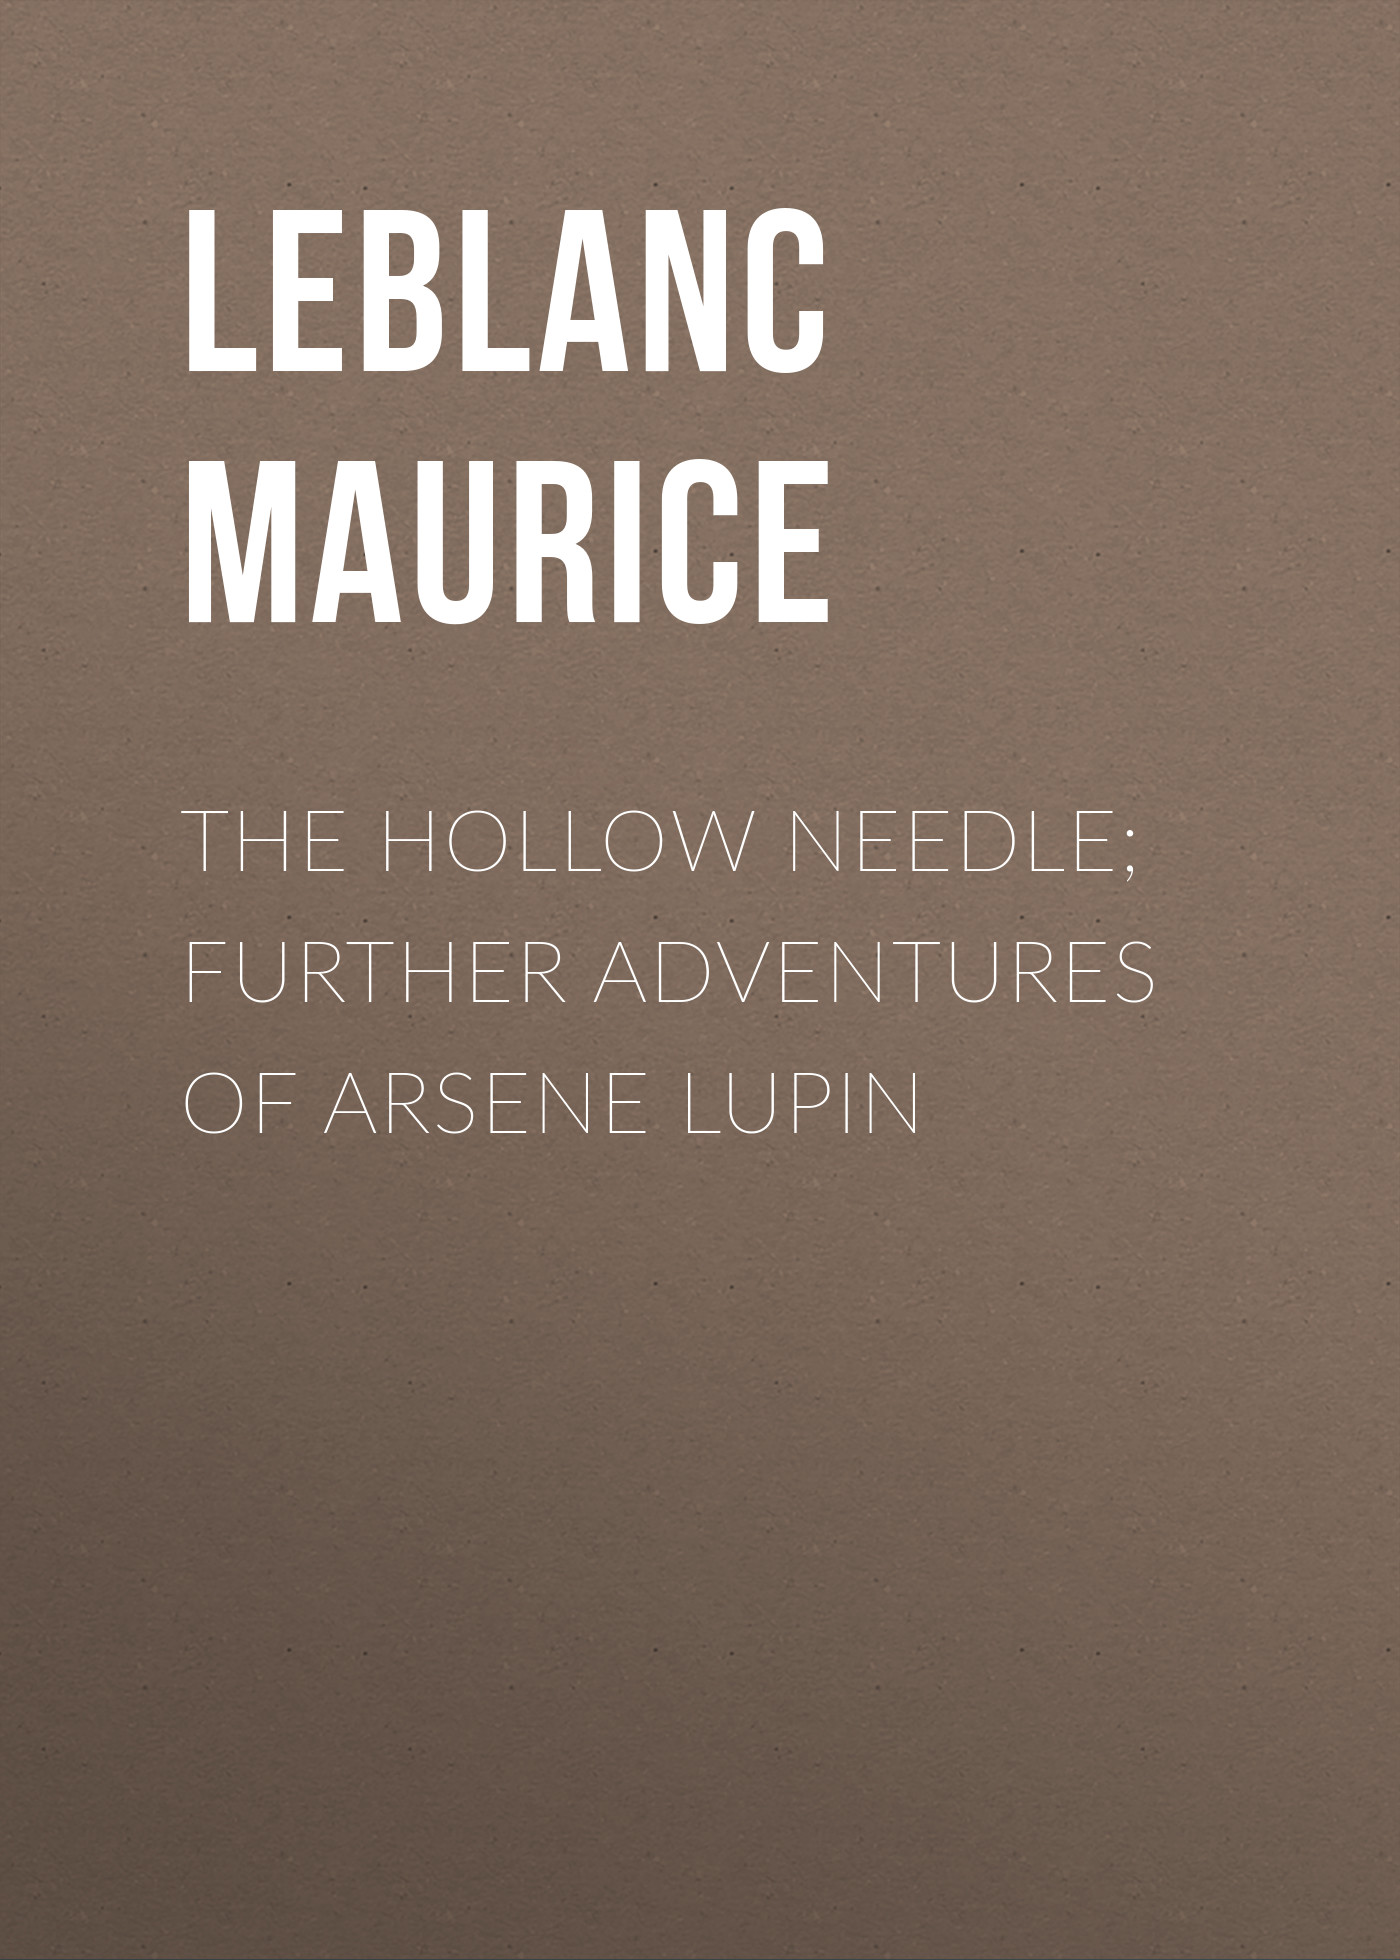 Leblanc Maurice The Hollow Needle; Further adventures of Arsene Lupin цена и фото